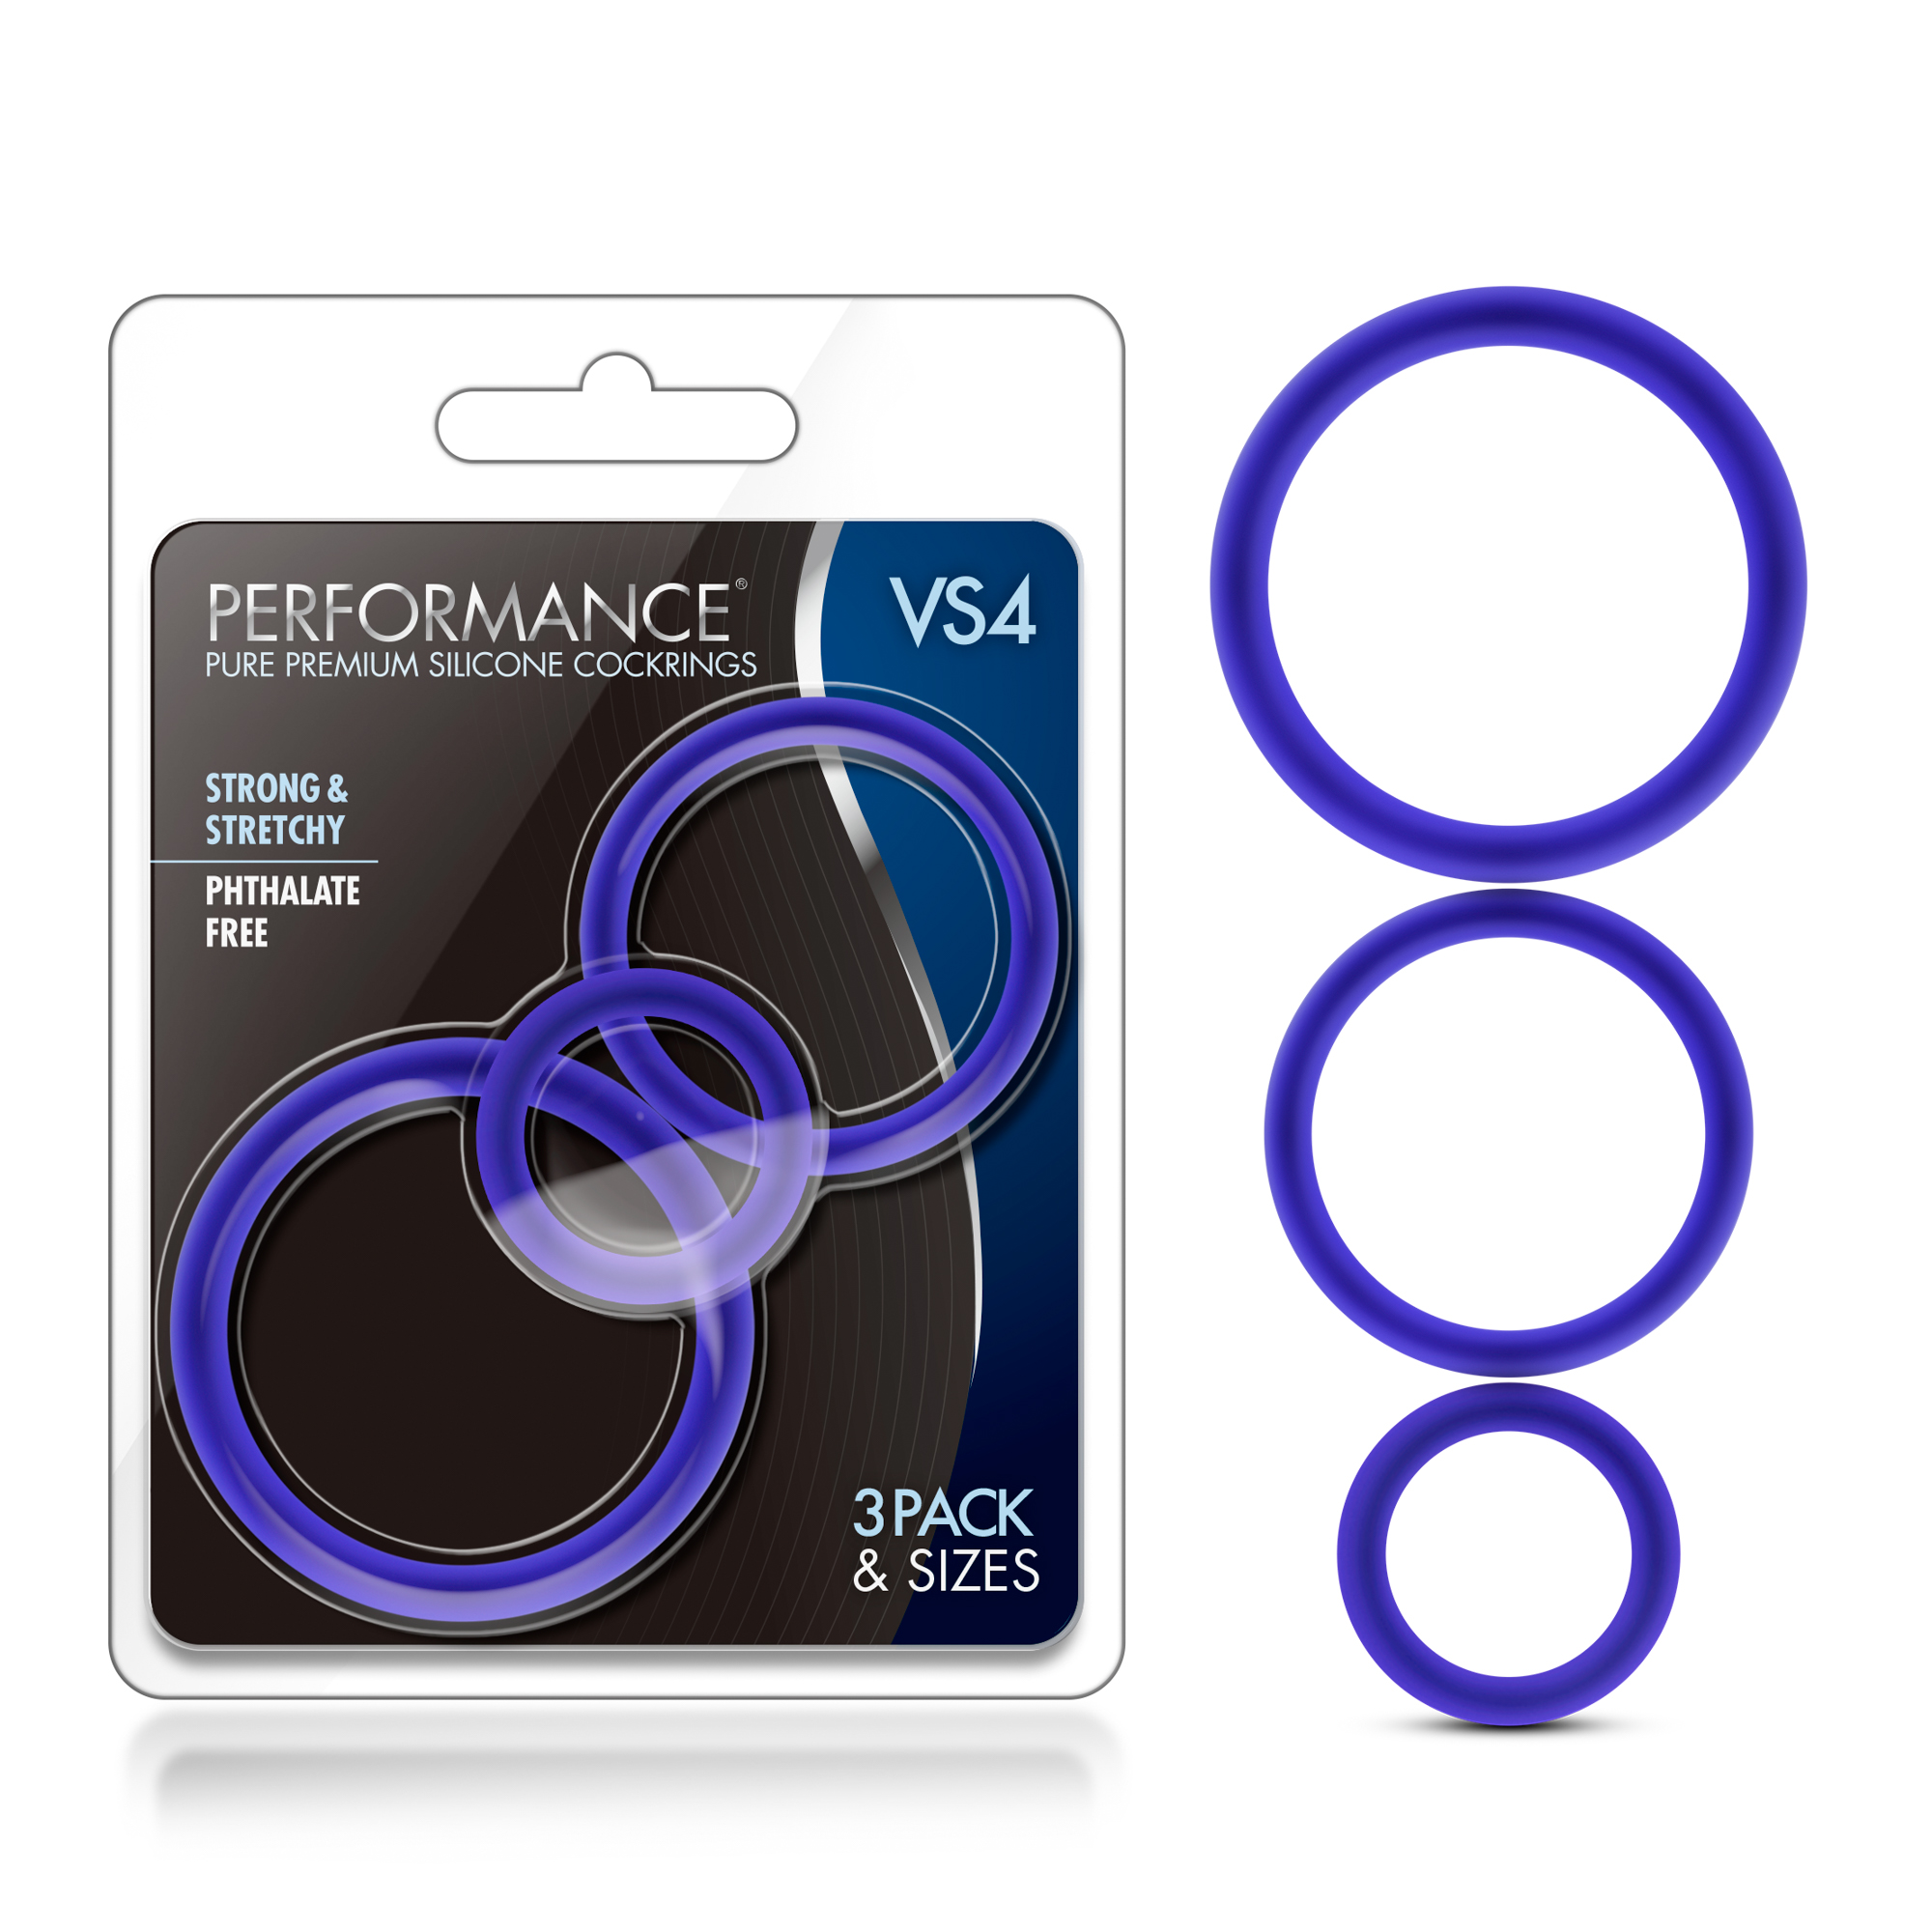 Performance - VS4 Pure Premium Silicone Cockring Set - Indigo